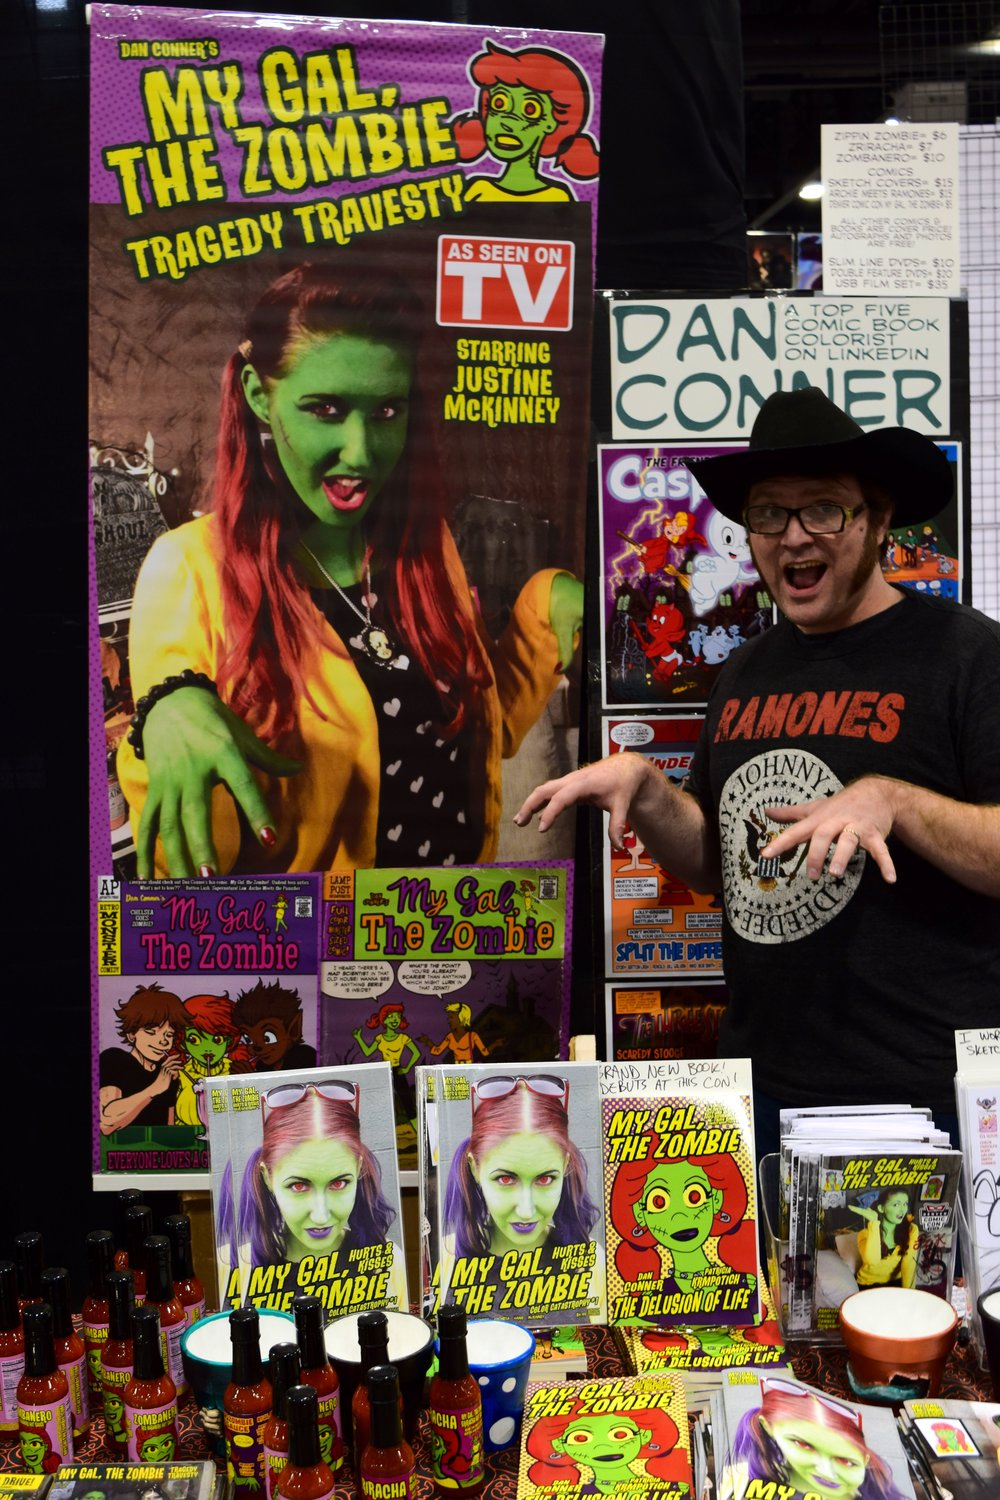 Dan Conner at Denver Comic Con 2017. (1)